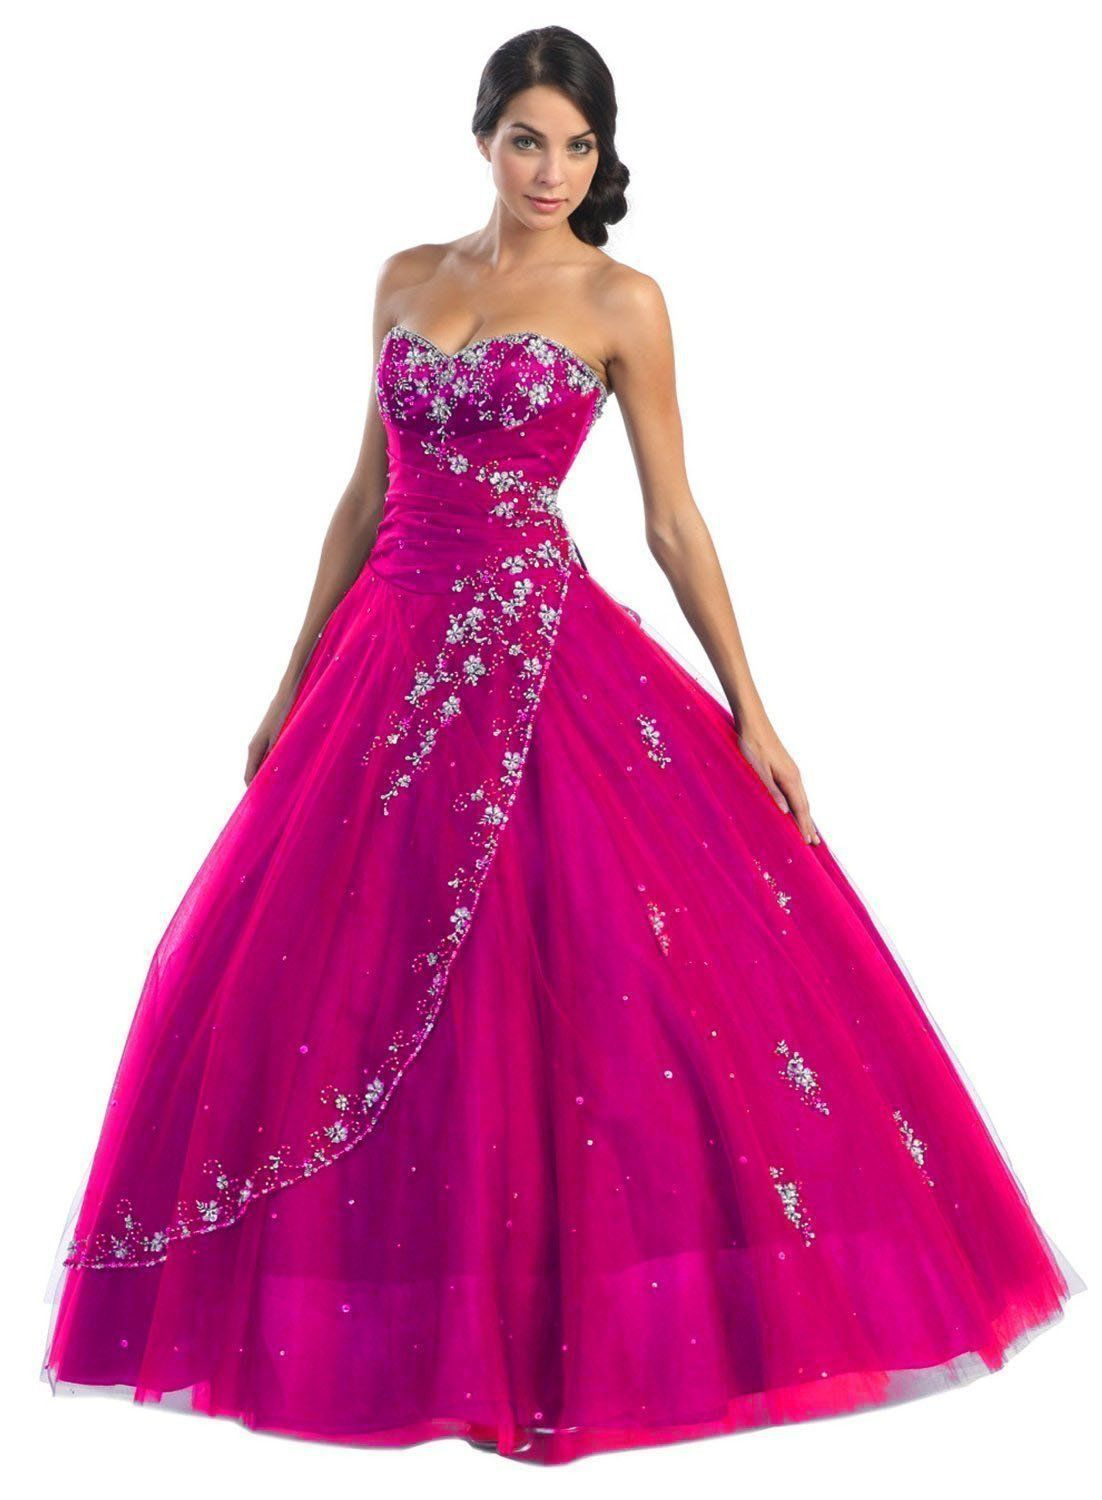 Quinceanera Long Ball Gown Sweet 16 Dress 2018 | 15 años, Vestidos ...